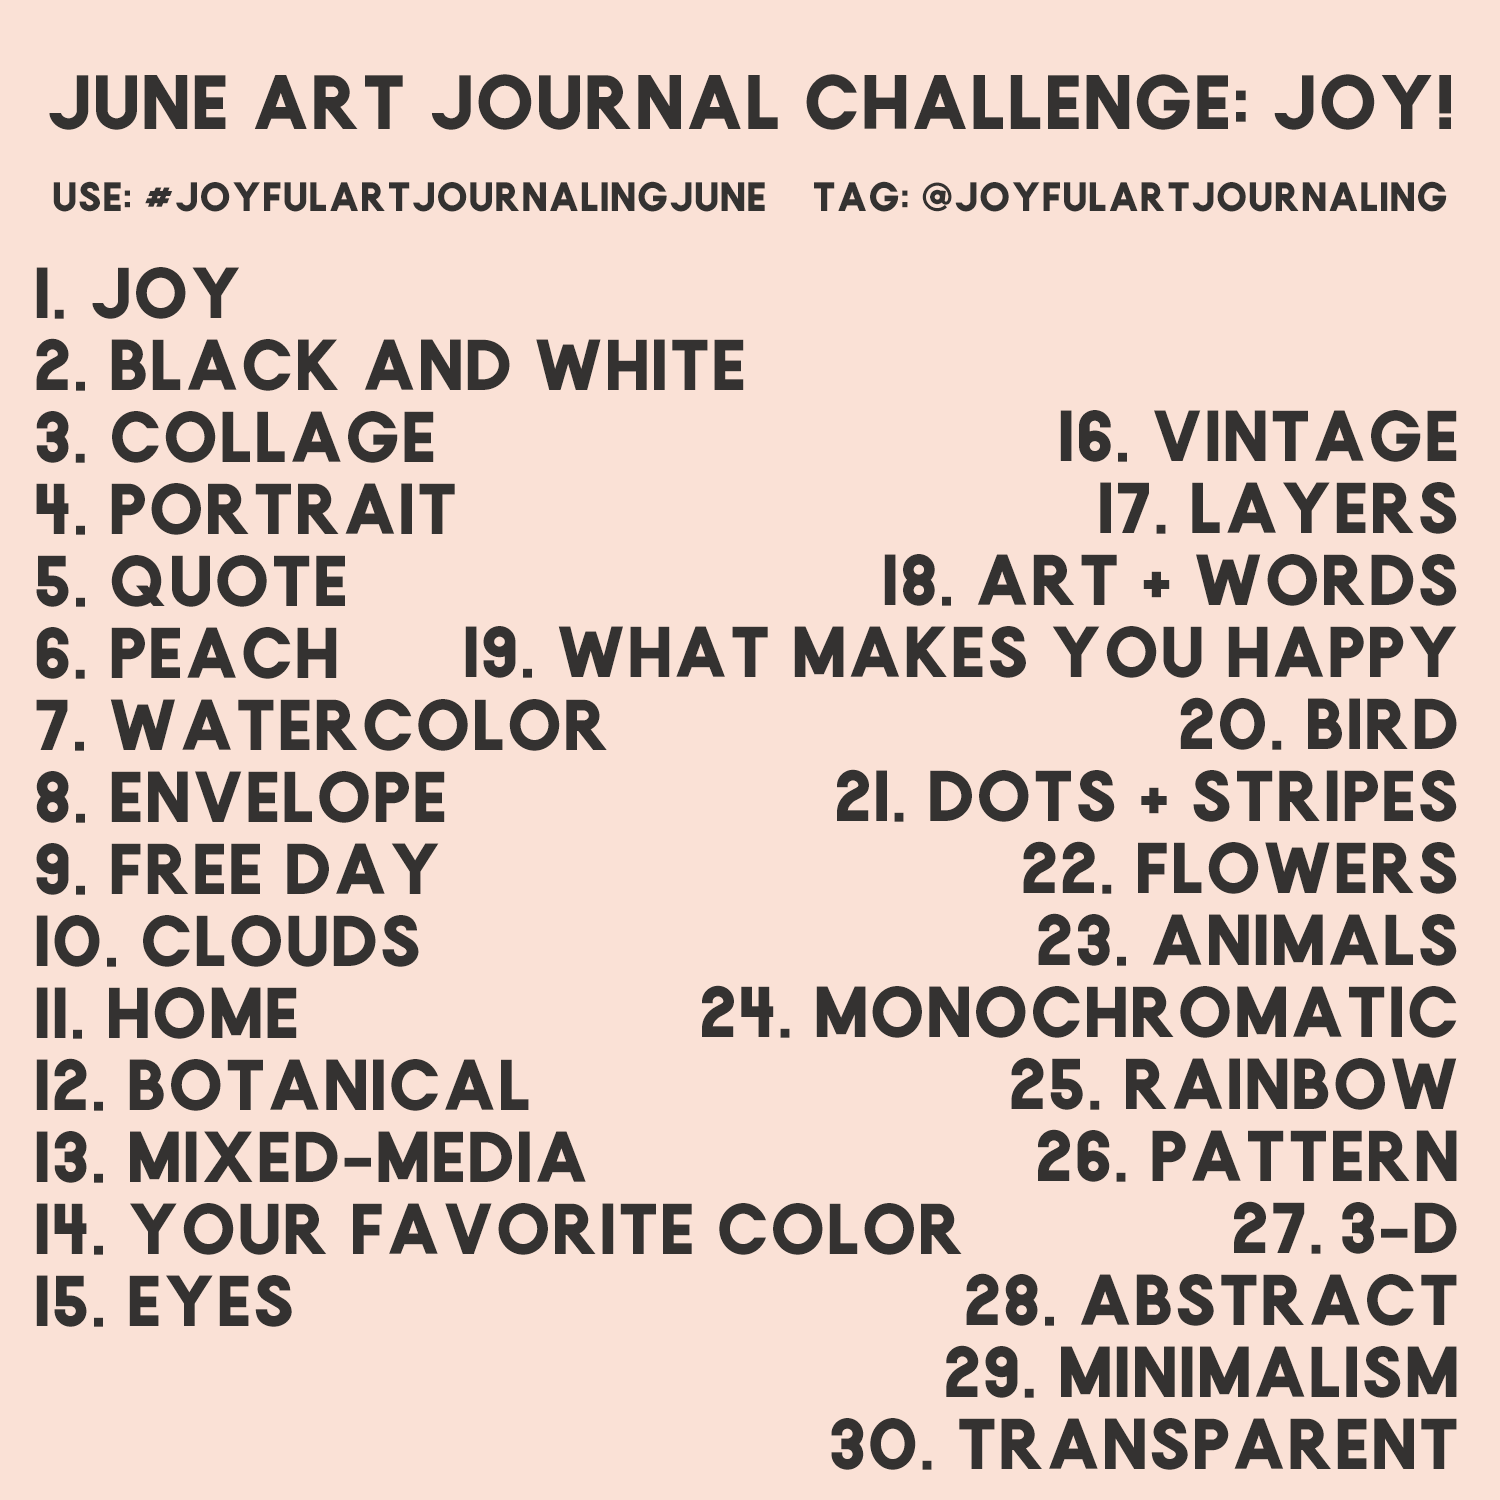 Do this 30 day art journal challenge to bring more JOY into your life, and the world, through art journaling! These 30 daily art journaling prompts are included as a creative jumping points.. #joyfulartjournaling